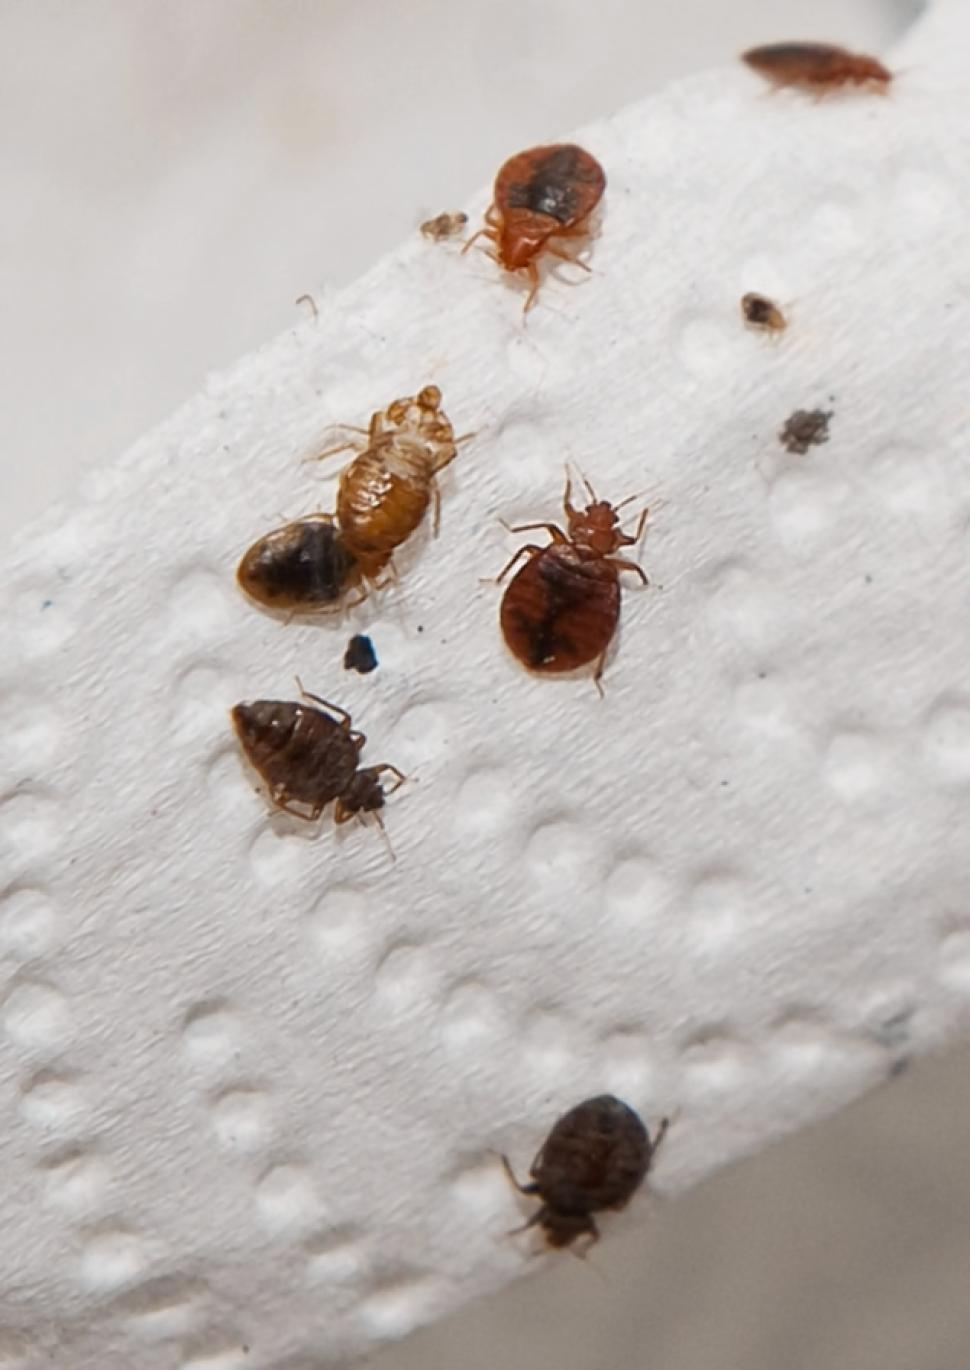 what causes bed bugs? - bed bug guide